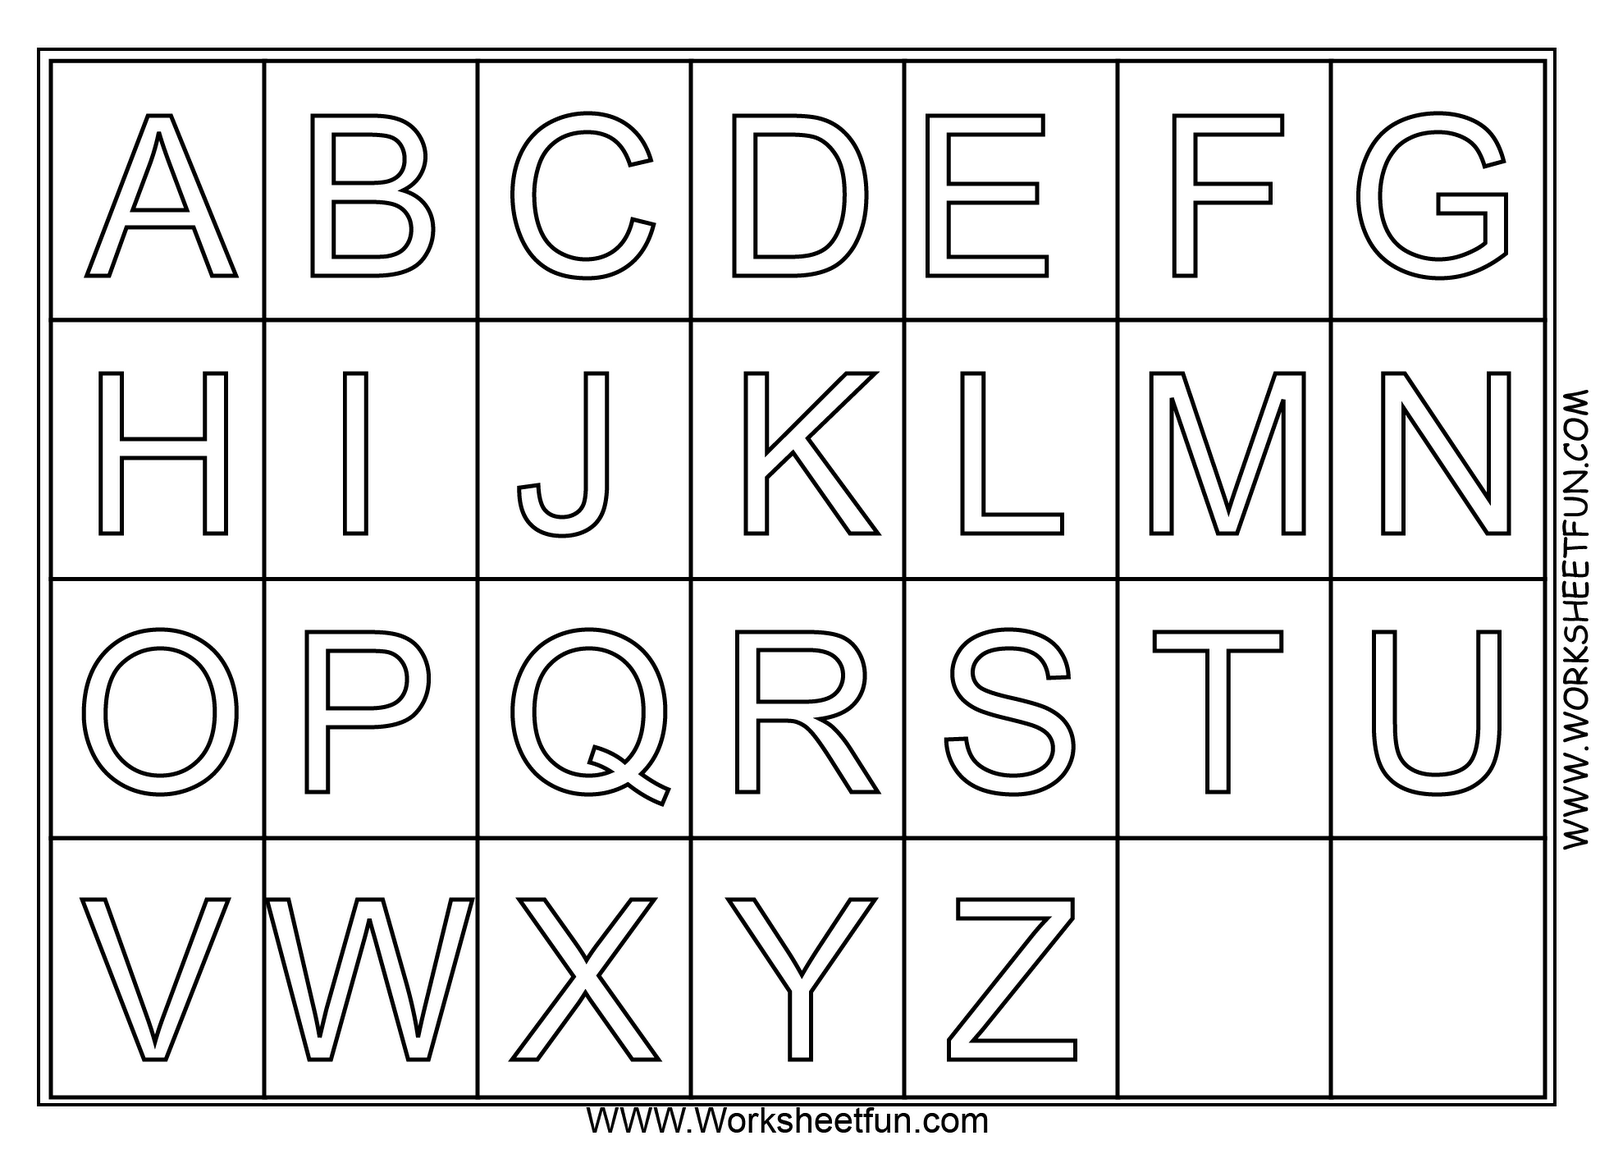 Worksheets Alphabet Worksheets For Preschool a z alphabet coloring pages download and print for free pre k worksheets preschoolersworksheets